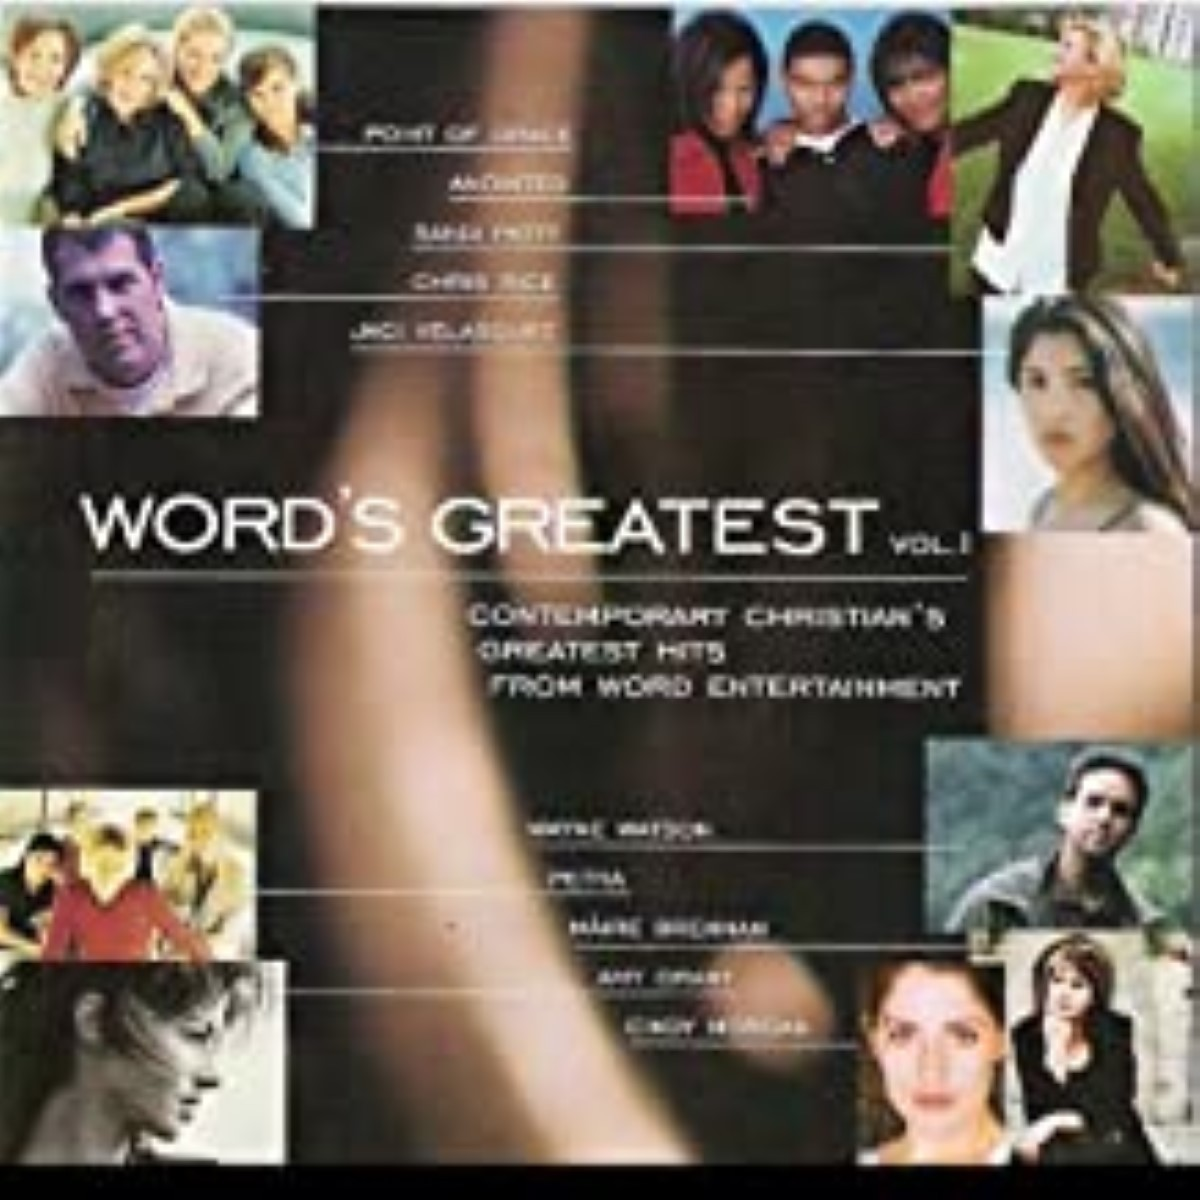 Word's Greatest Vol. 1 Cd